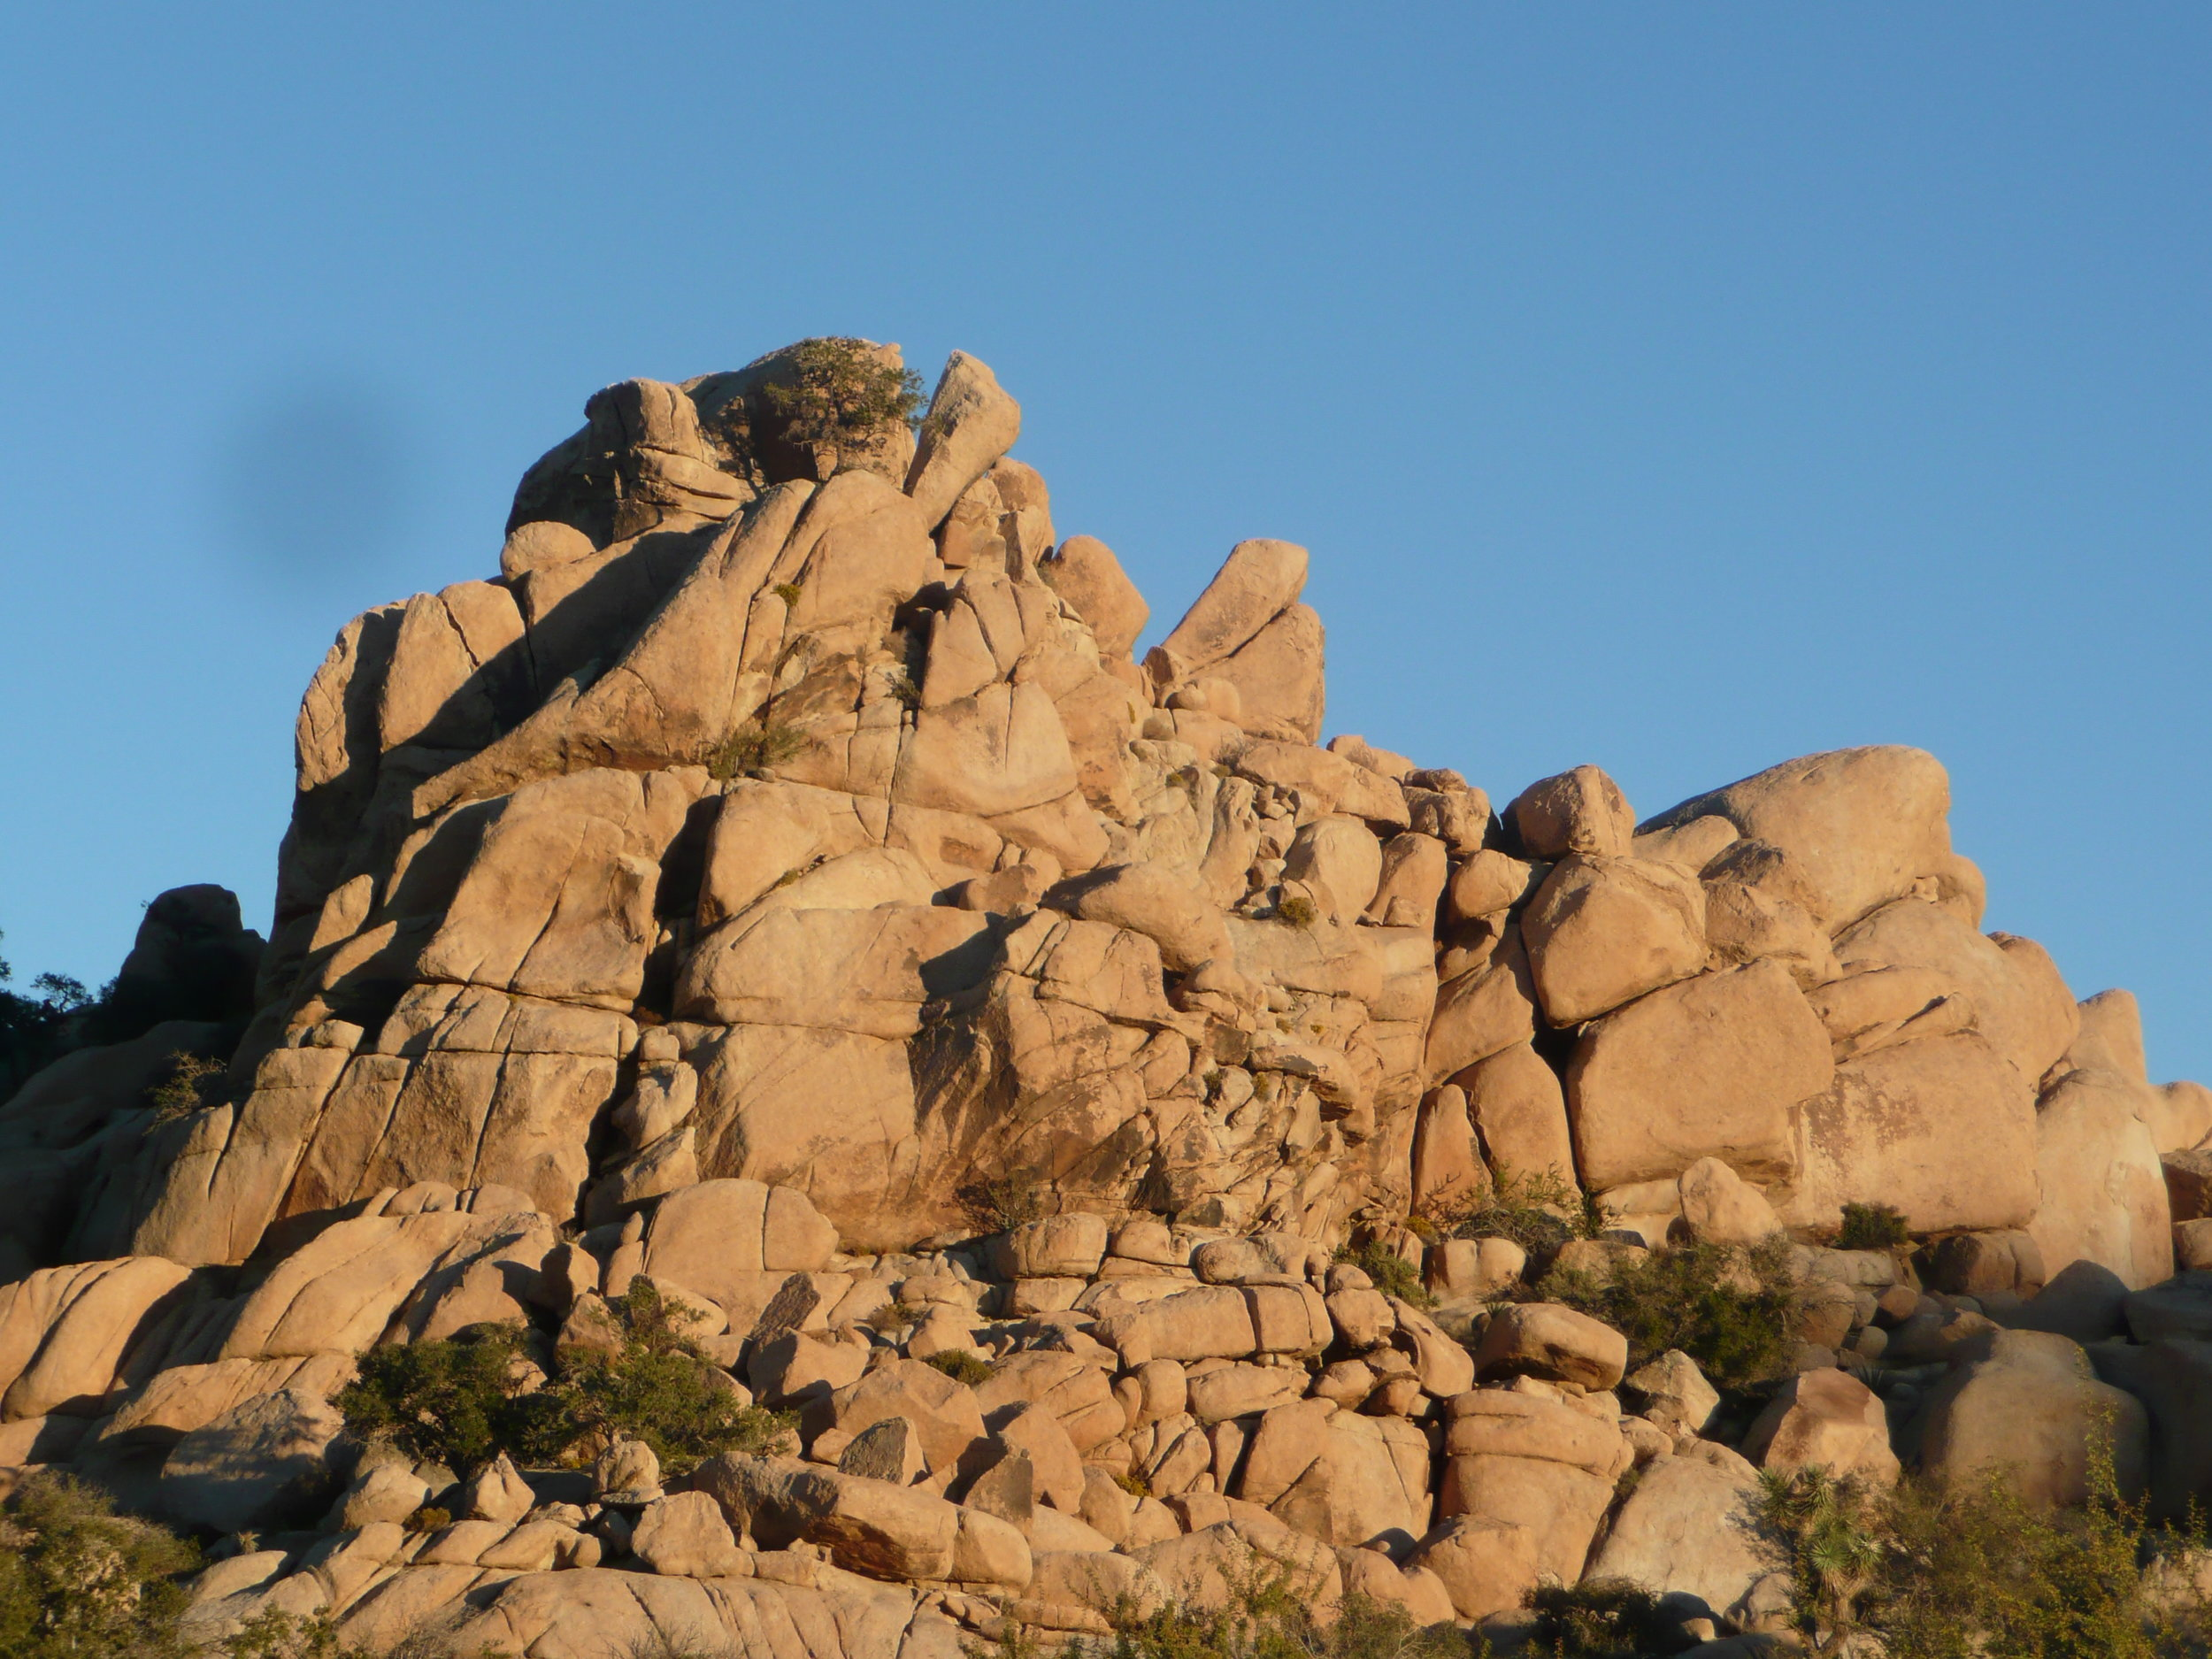 Boulder stacks, west side of Joshua Tree National Park